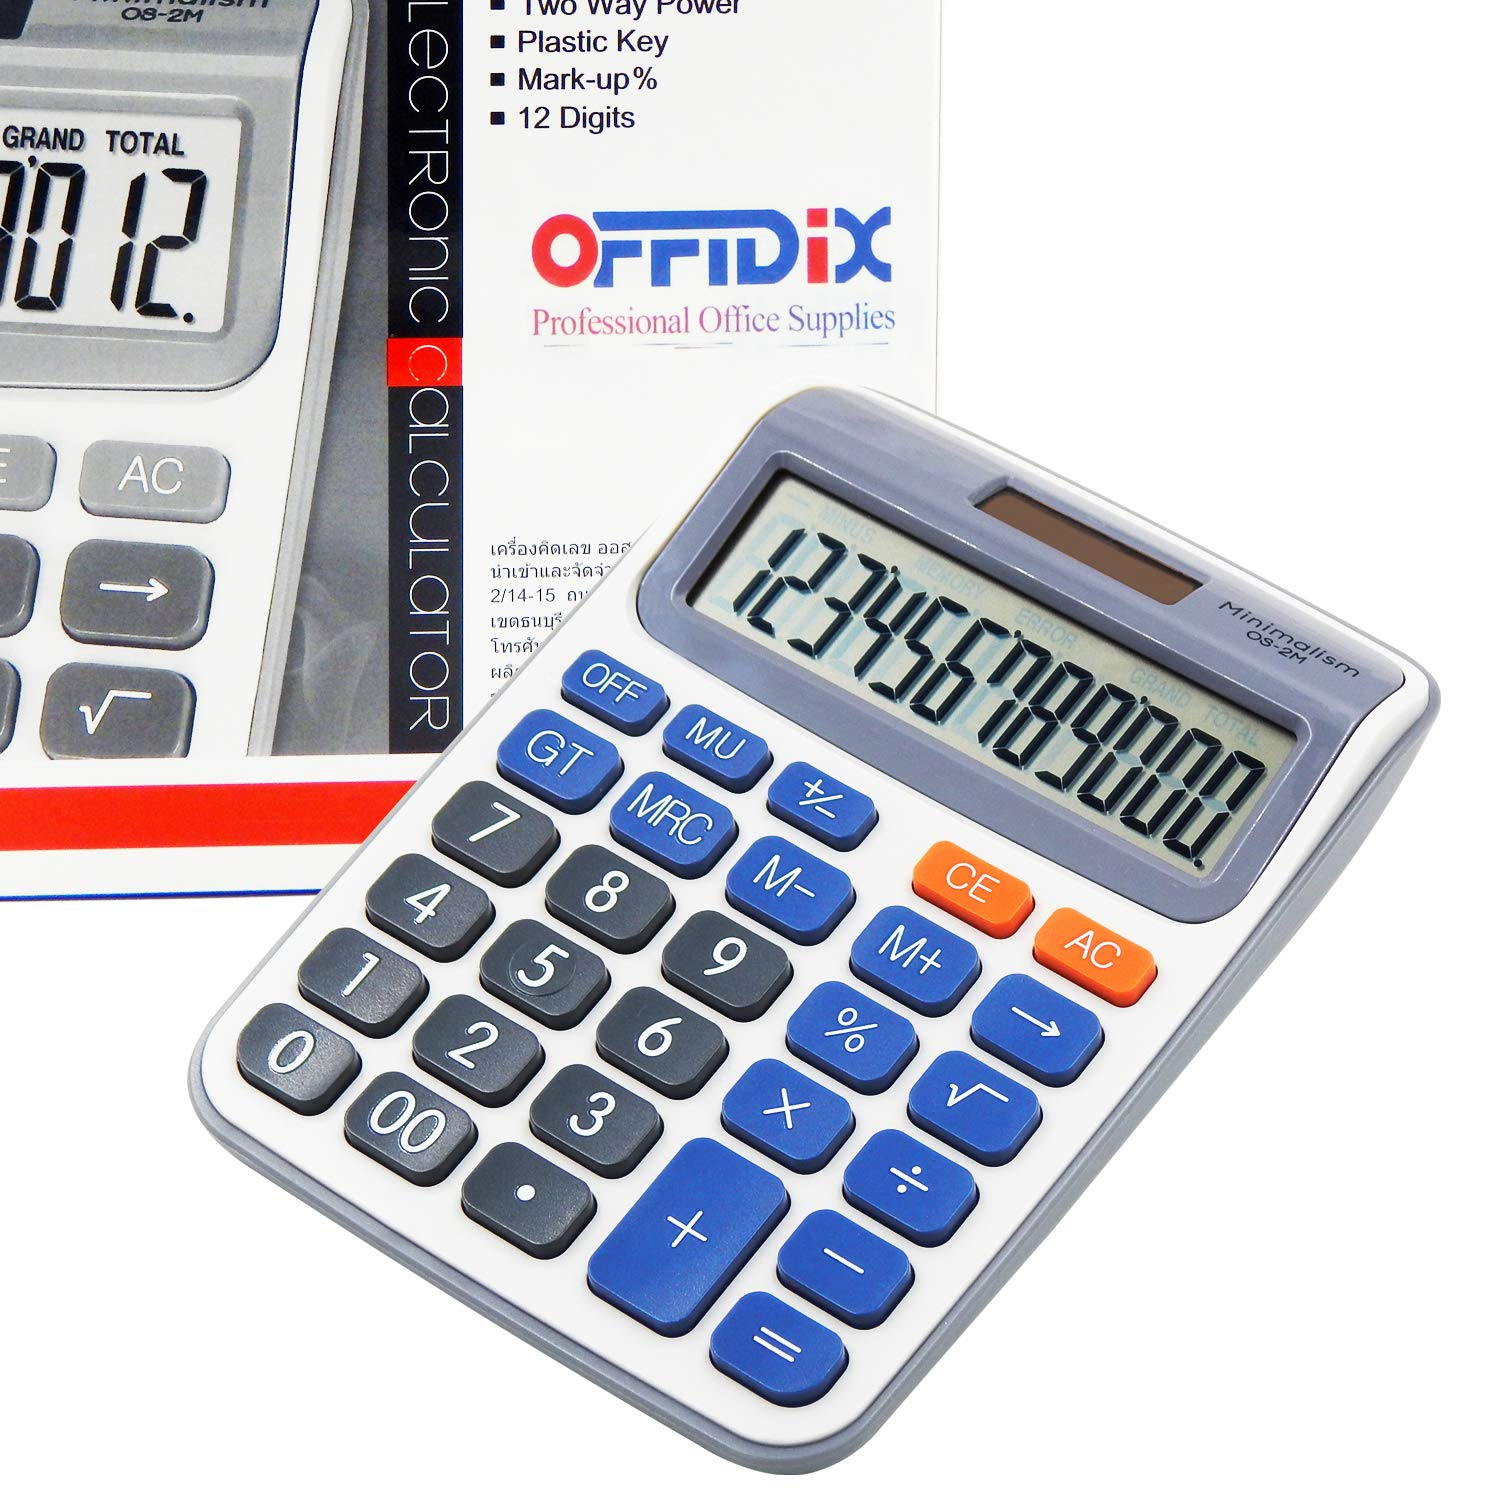 OFFIDIX Desk Calculators Office Desktop Calculator,Solar and Battery Dual Power Electronic Calculator Portable 12 Digit Large LCD Display Calculator Handheld Calculator (Dark Blue) by OFFIDIX